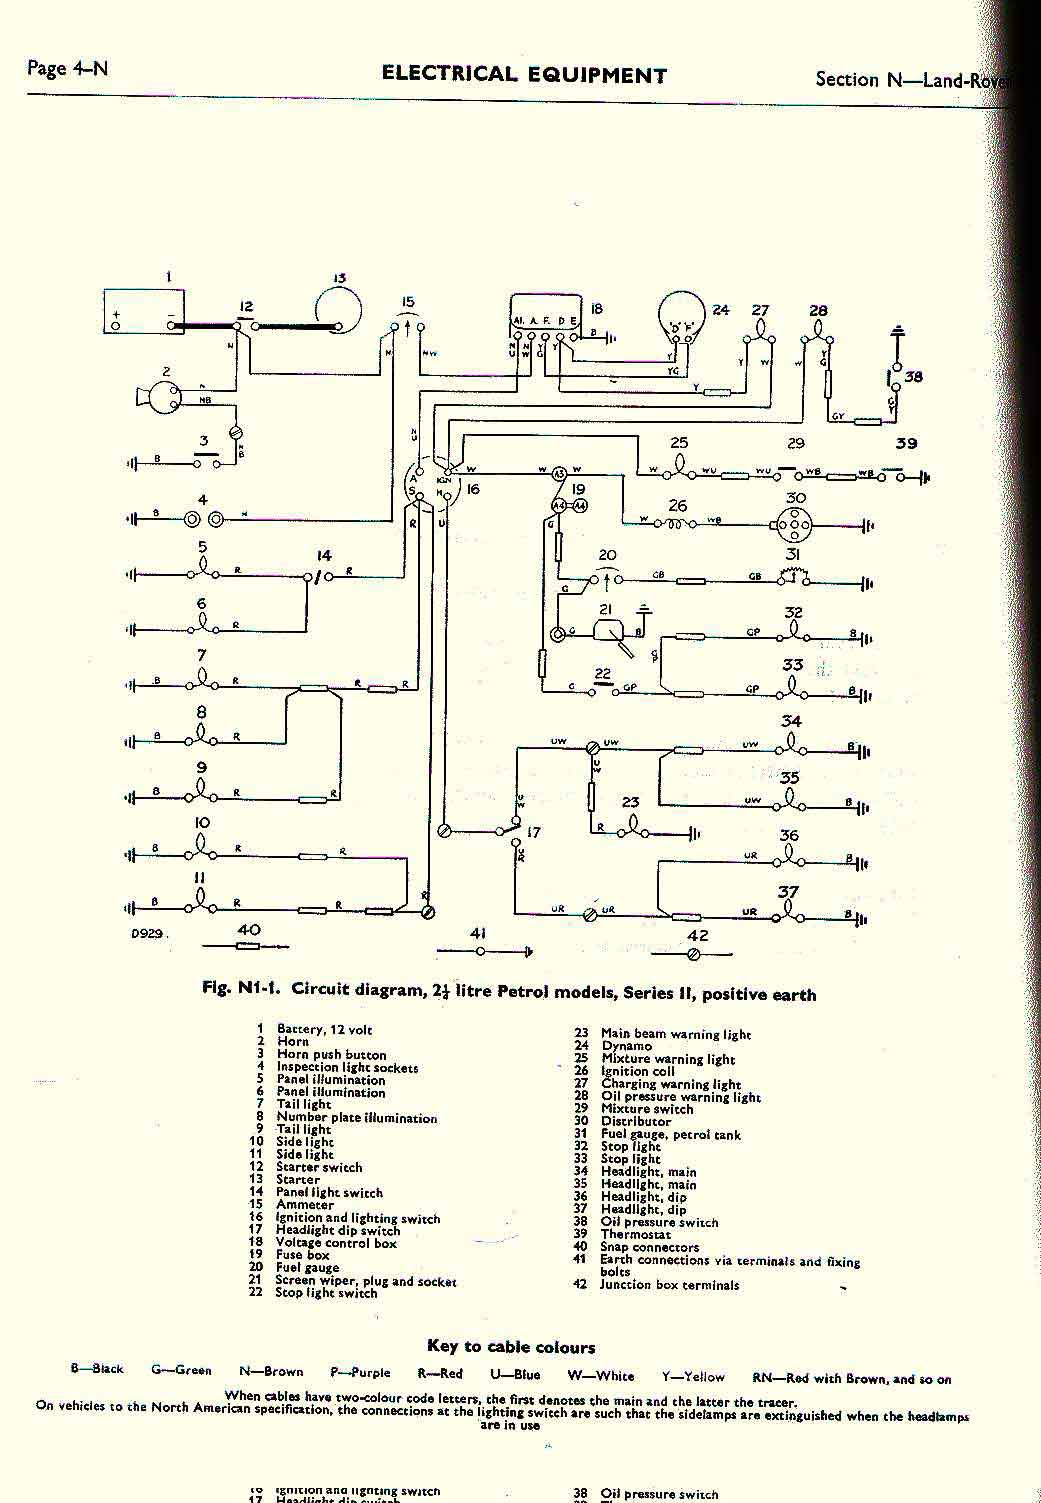 land rover discovery 1 wiring diagram of the atp molecule faq - repair & maintenance series electrical reference si diagrams